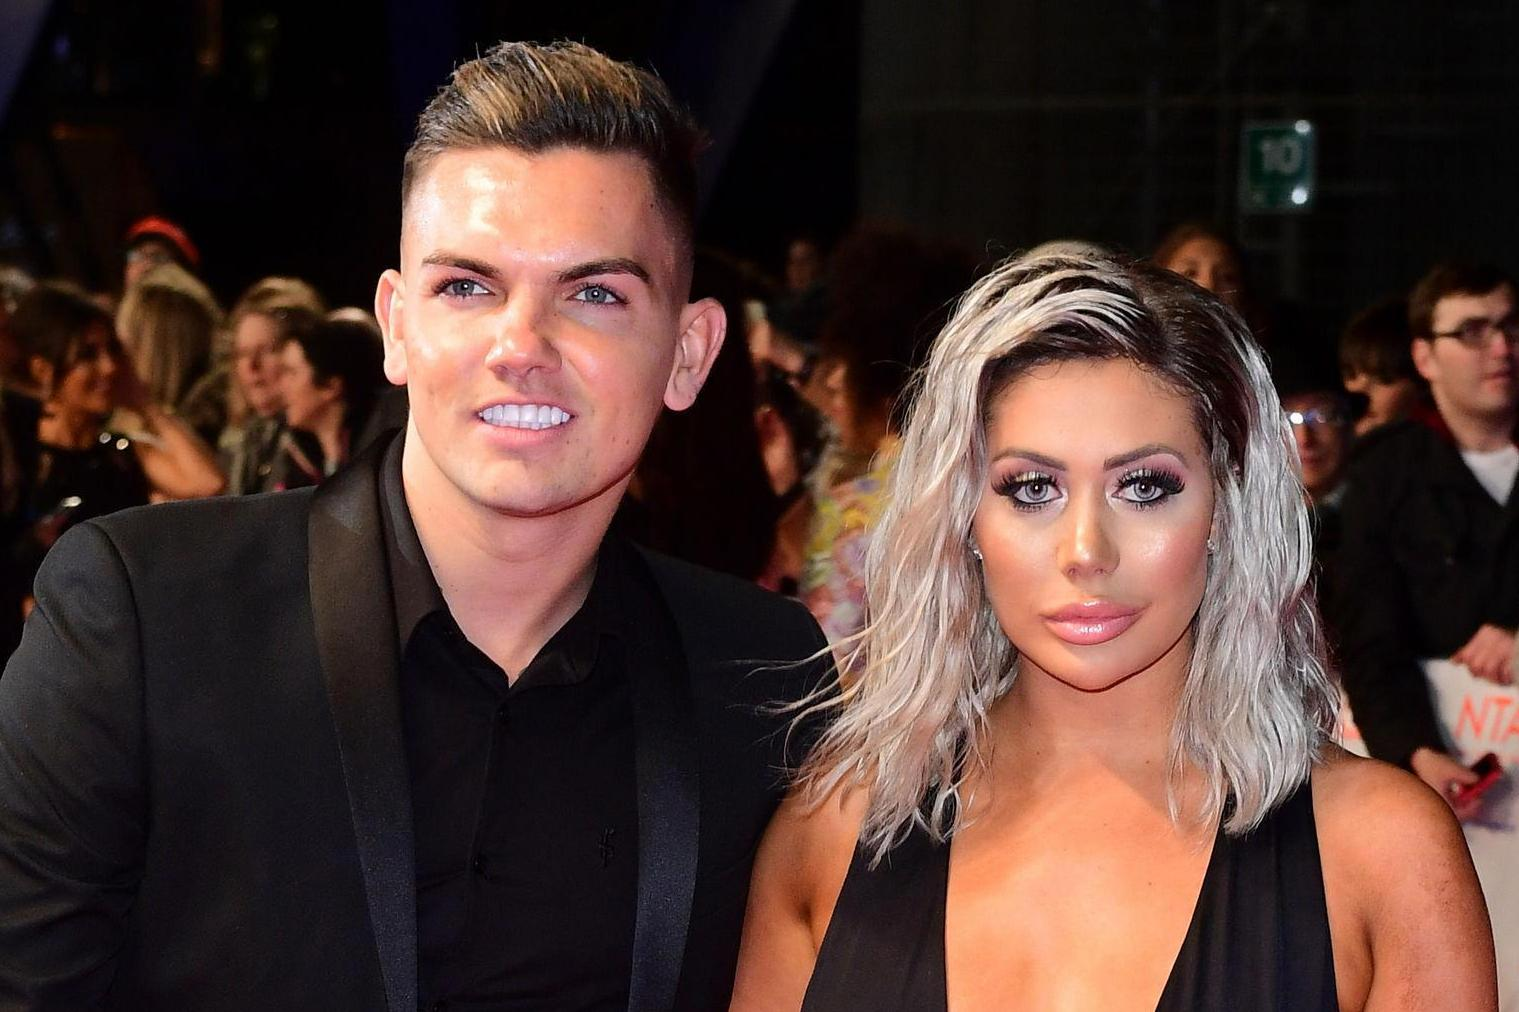 Chloe Ferry and Sam Gowland bag their own reality TV show to tell all on surgery, breakdowns and sex life